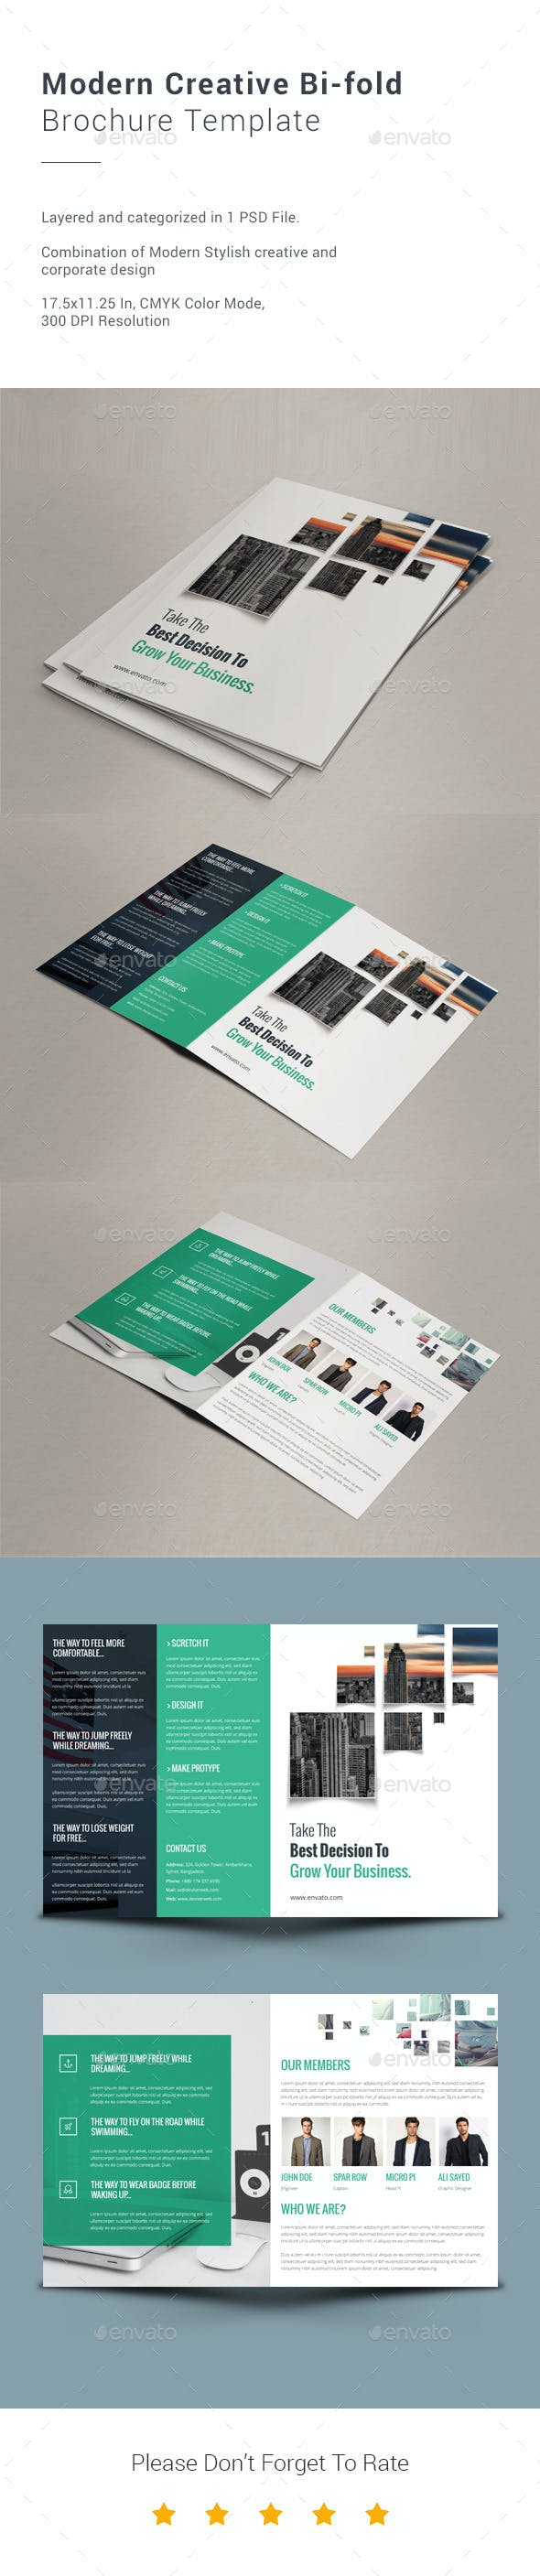 modern creative bi fold brochure template by ali sayed graphicriver